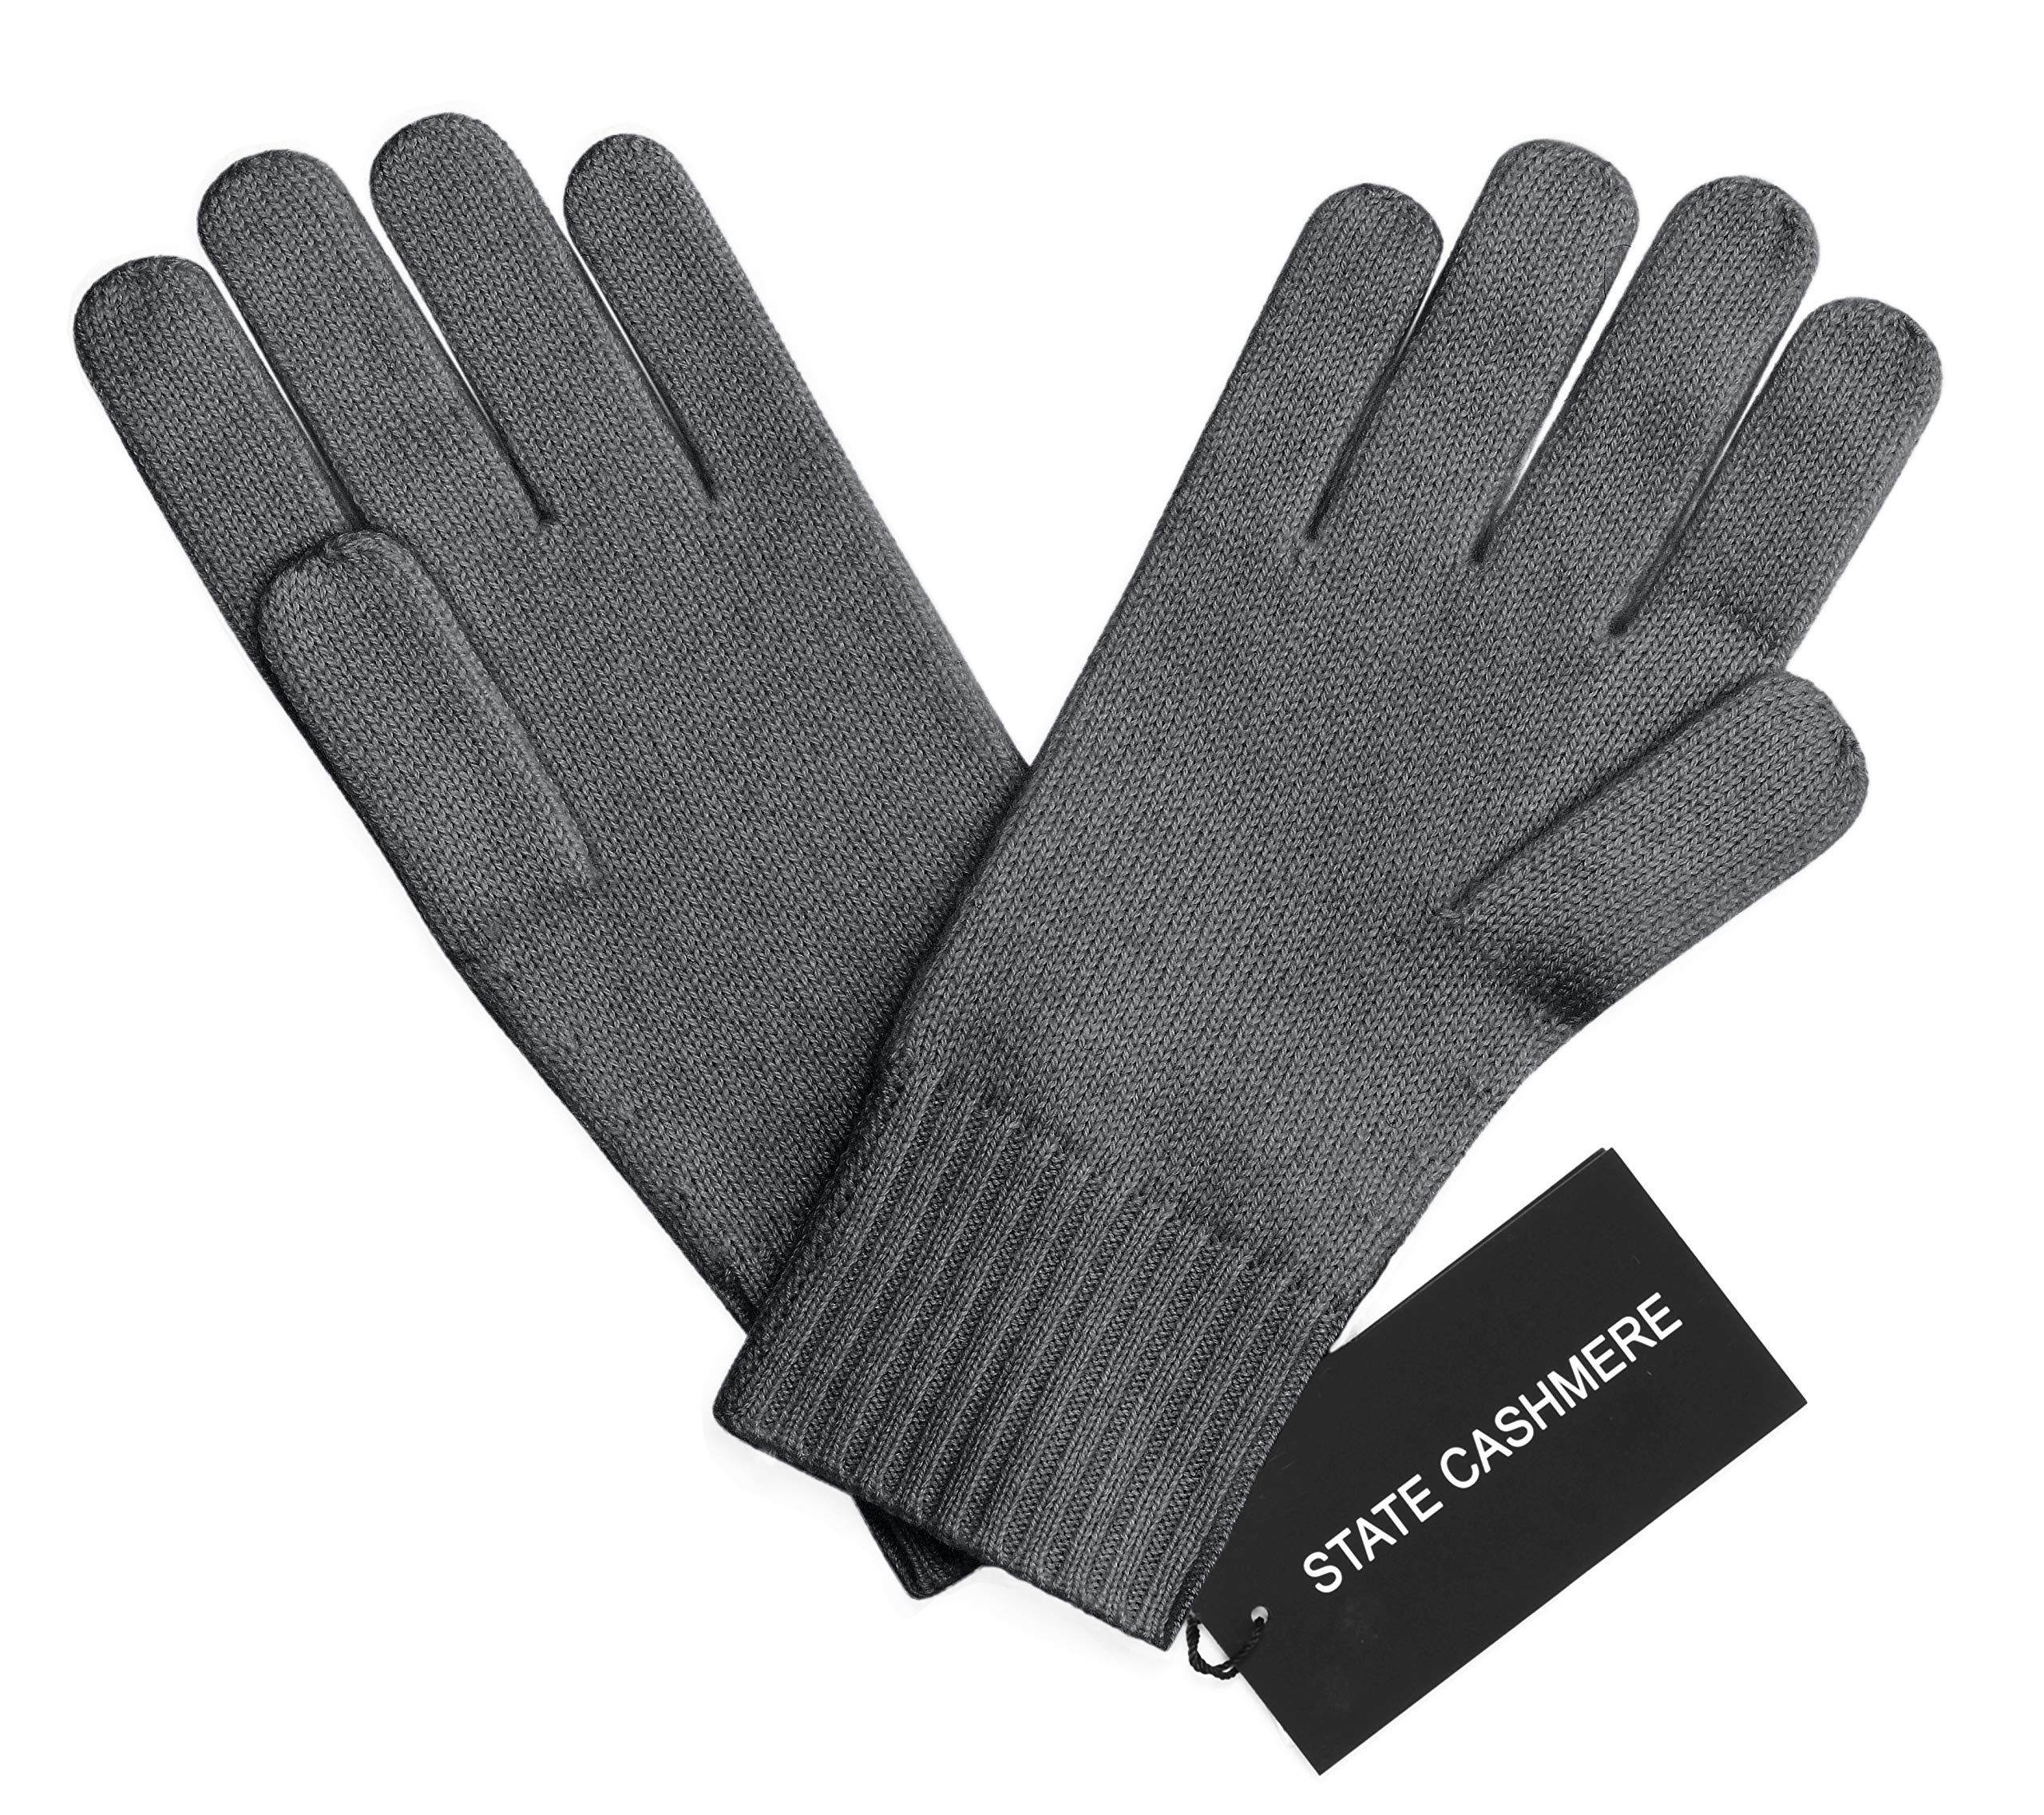 State Cashmere 100% Pure Cashmere Gloves, Cable Knit Design - Ultimate Soft and Warm (Charcoal)